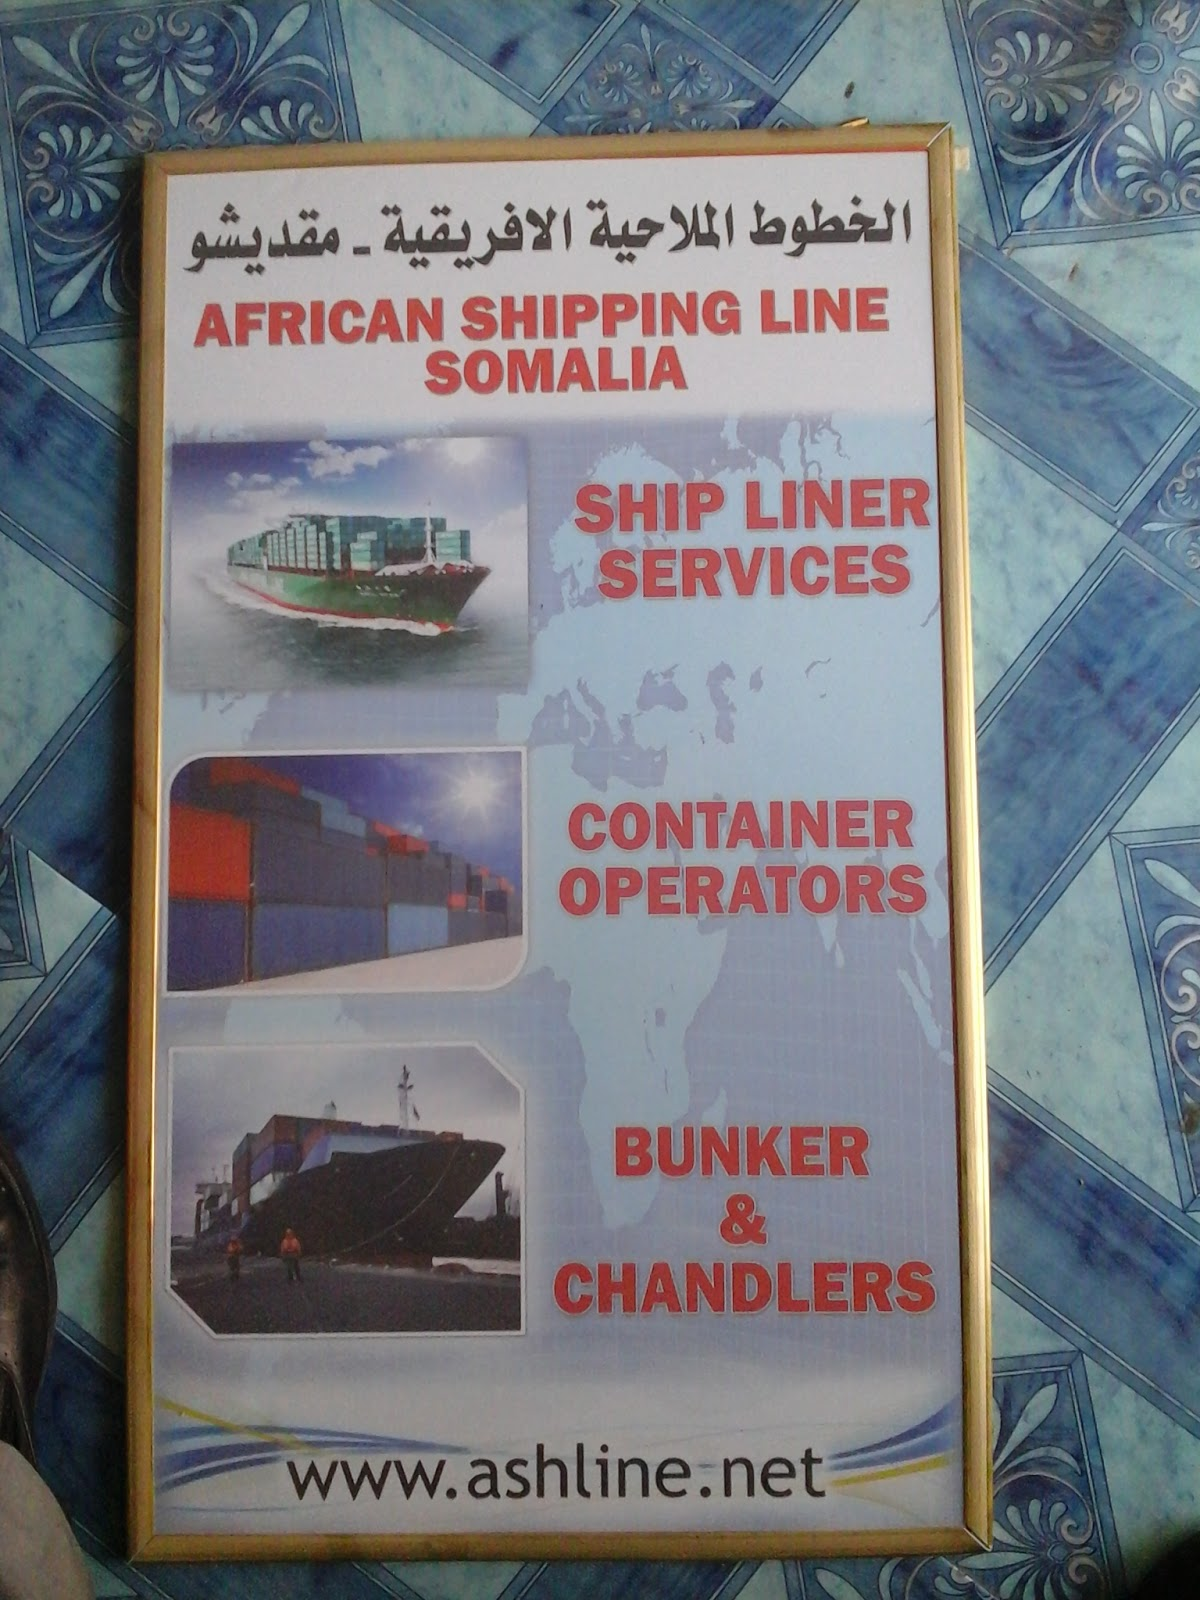 AFRICAN SHIPPING LINE - ASLINE: 02/09/12